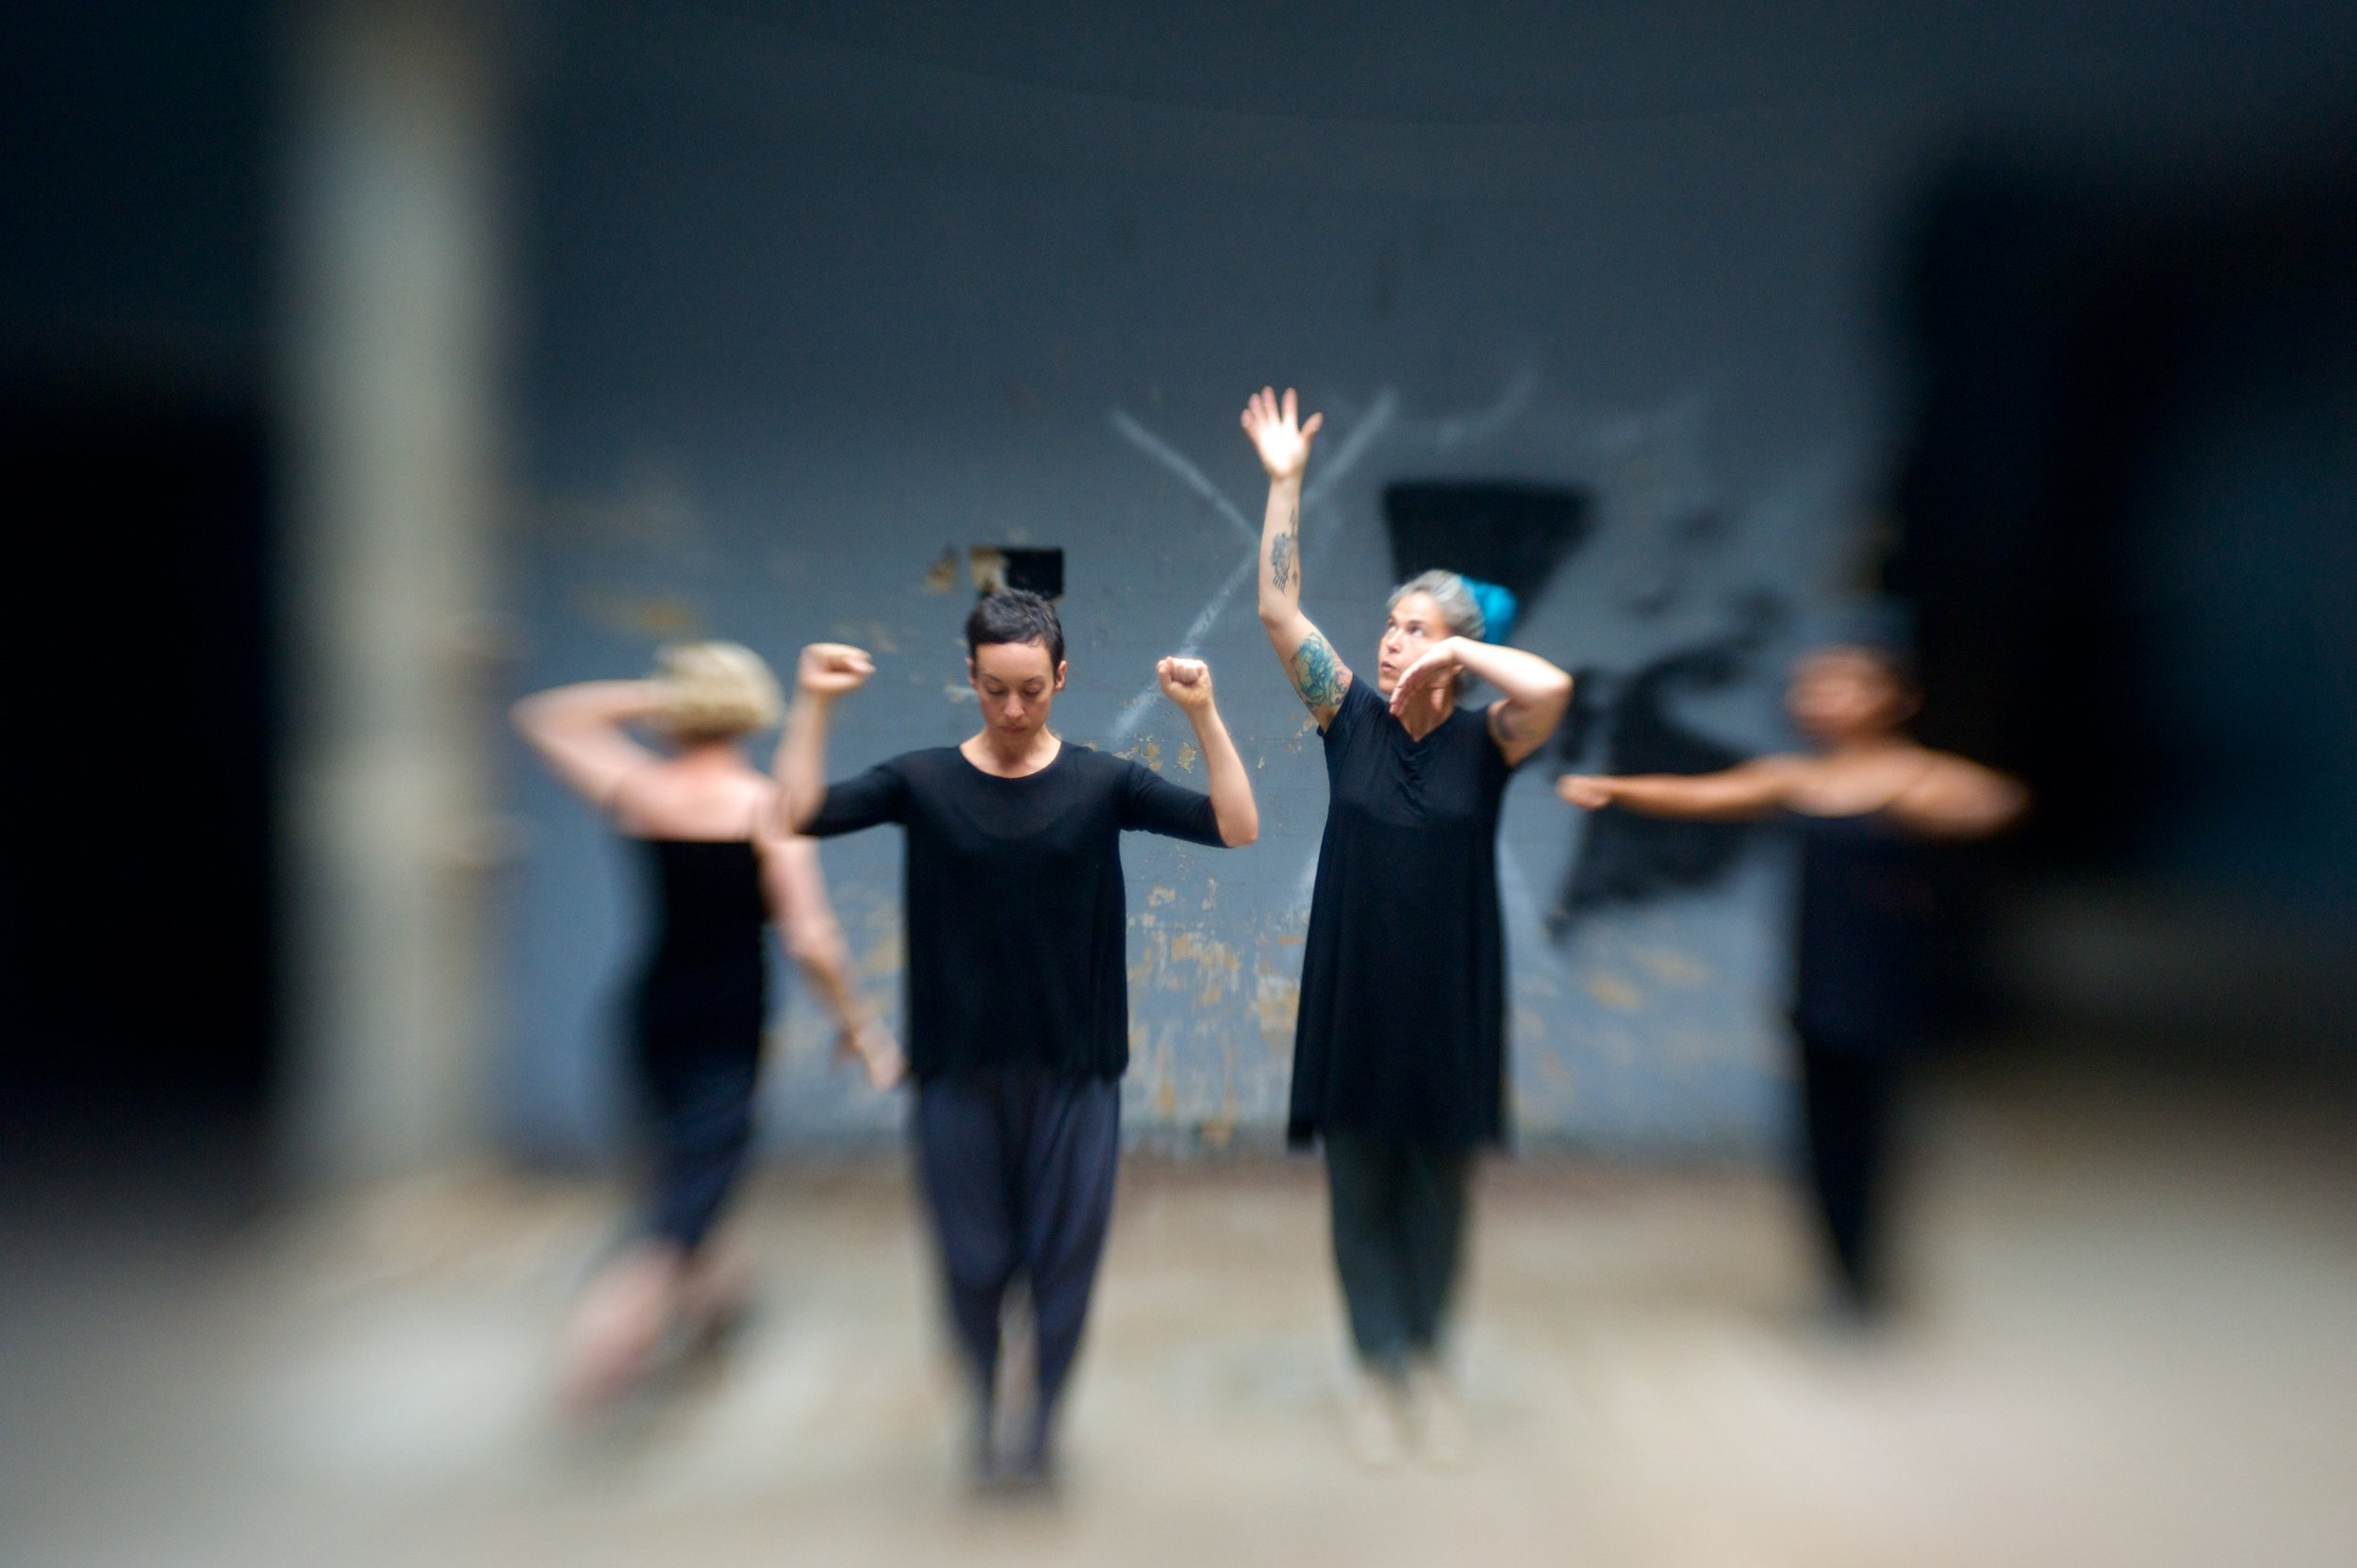 Four dancers perform. The image has a very small area of focus in the middle and gets very out of focus at the edges